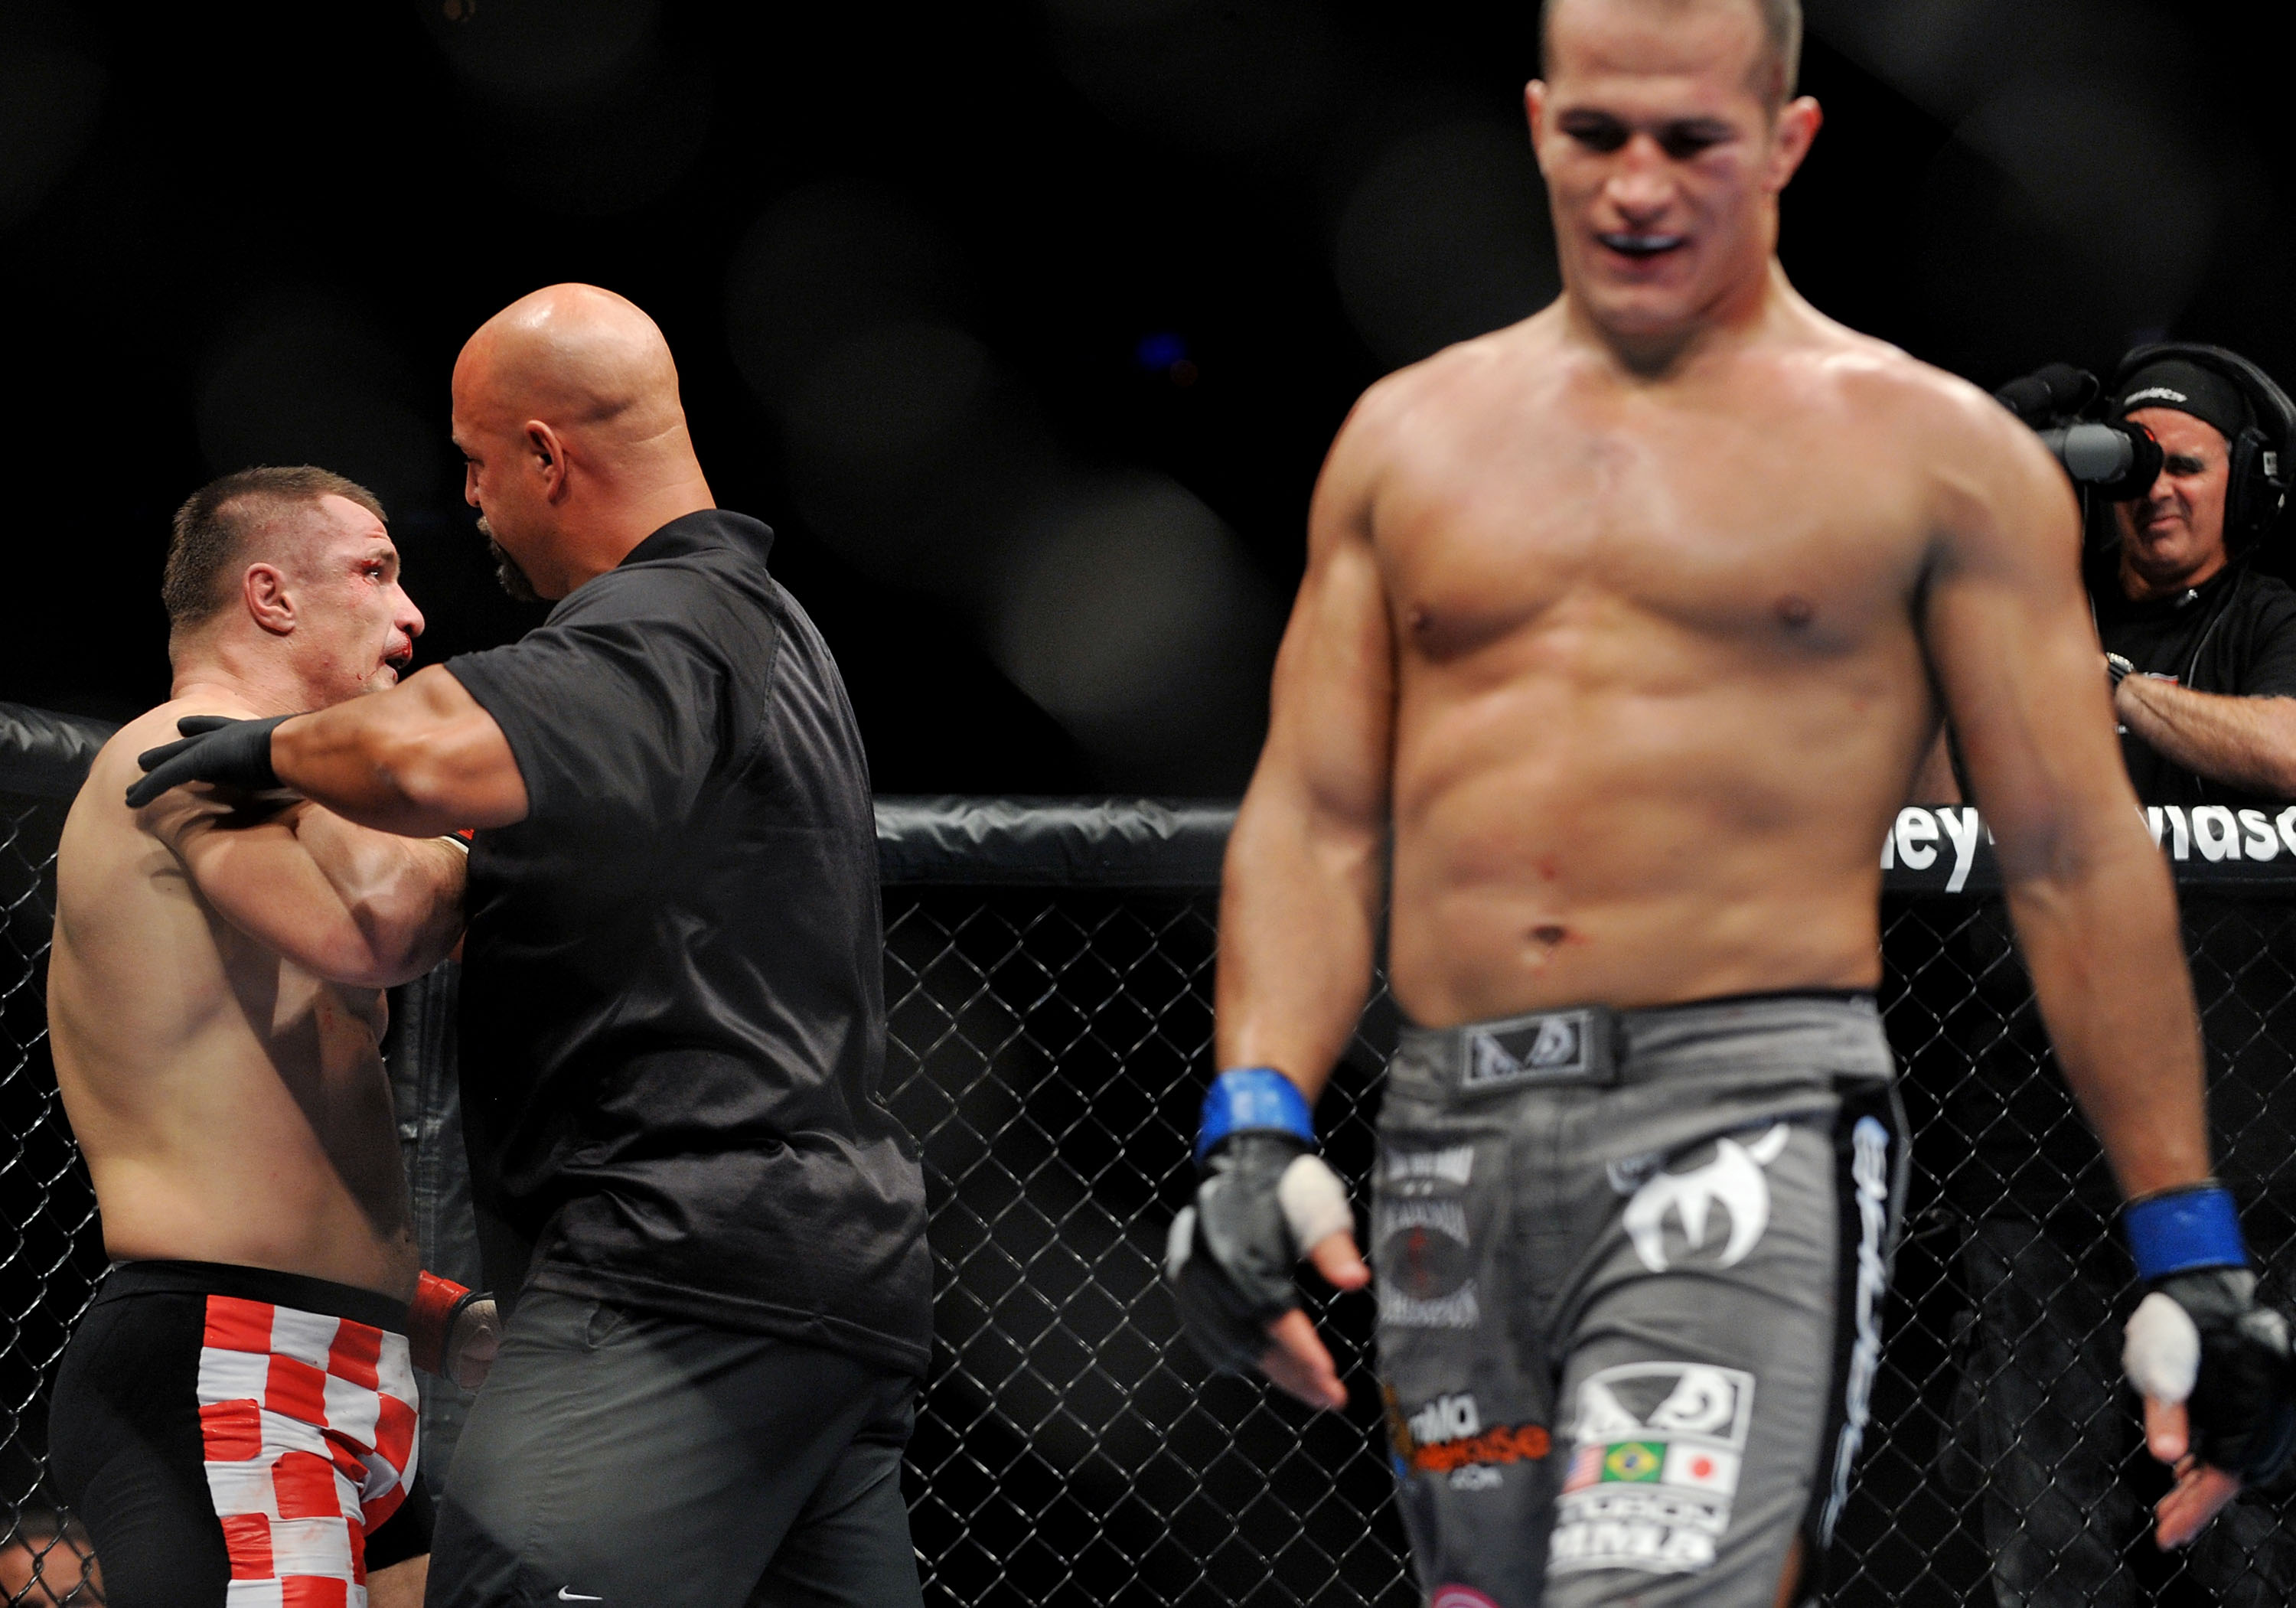 DALLAS - SEPTEMBER 19:  UFC fighter Mirko Cro Cop (L) is stopped by referee after losing to opponent UFC fighter Junior Dos Santo (R) during their Heavyweight bout at UFC 103: Franklin vs. Belfort at the American Airlines Center on September 19, 2009 in D